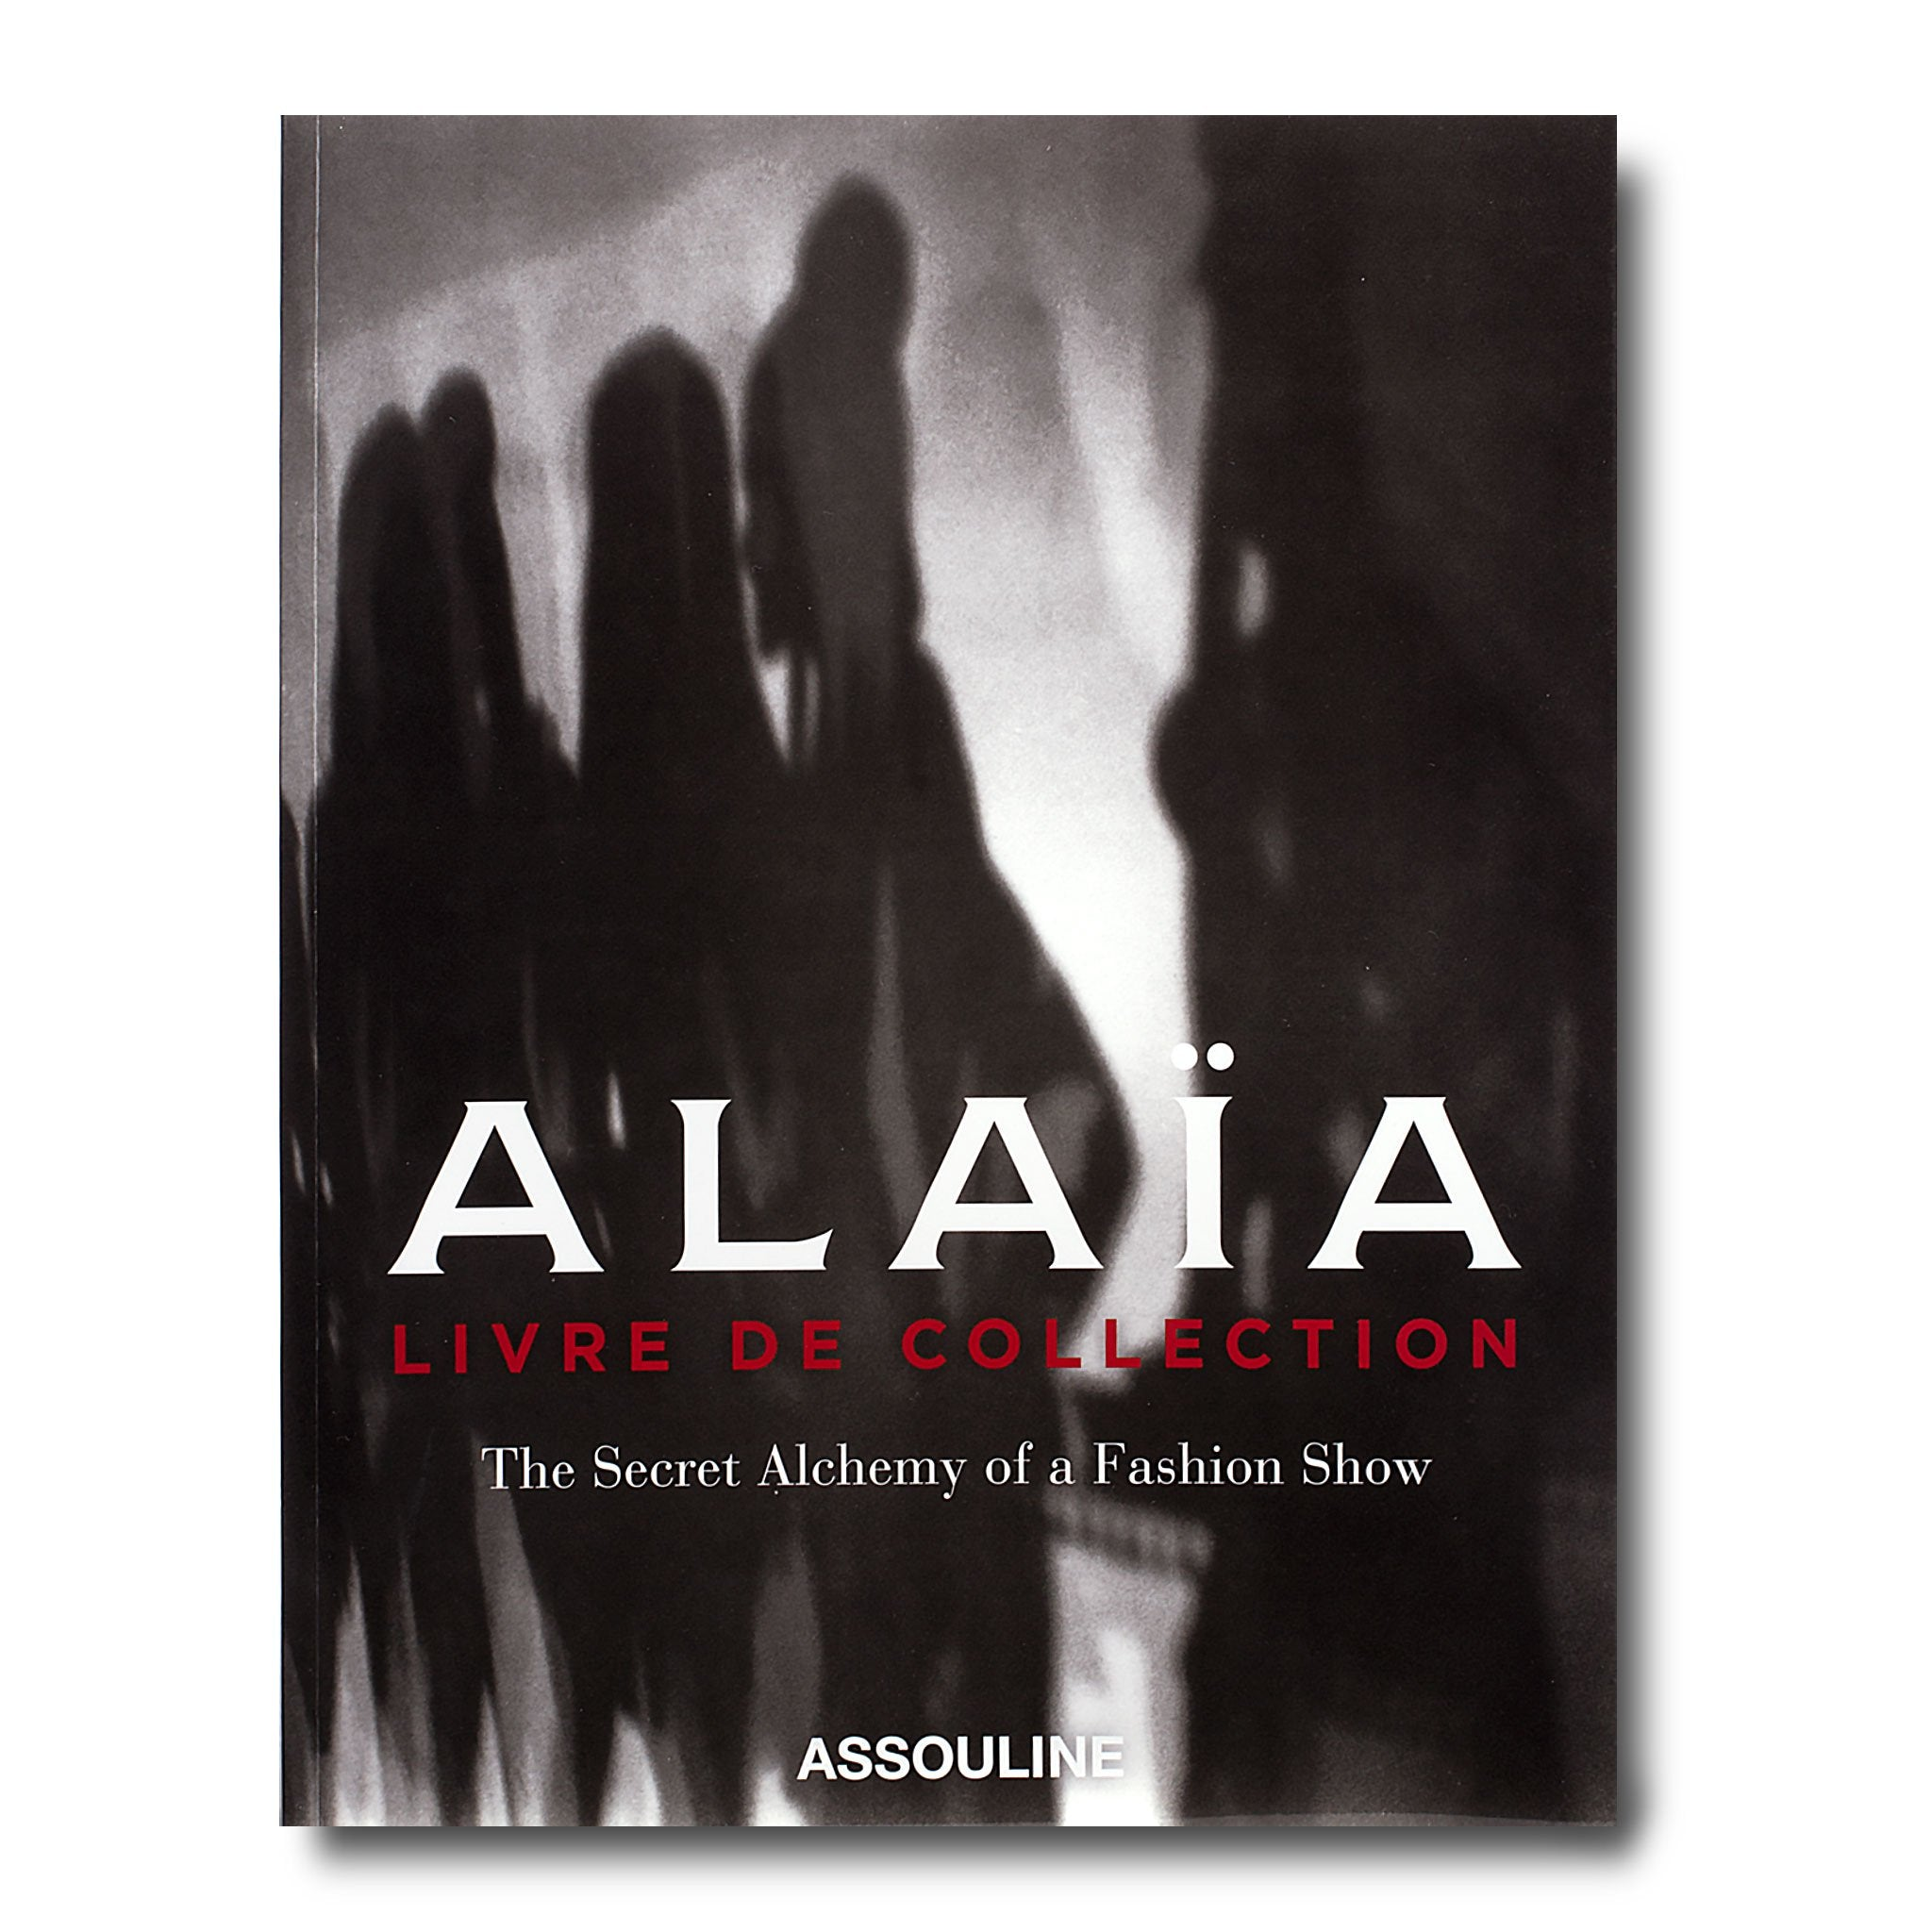 Alaia Livre De Collection Assouline